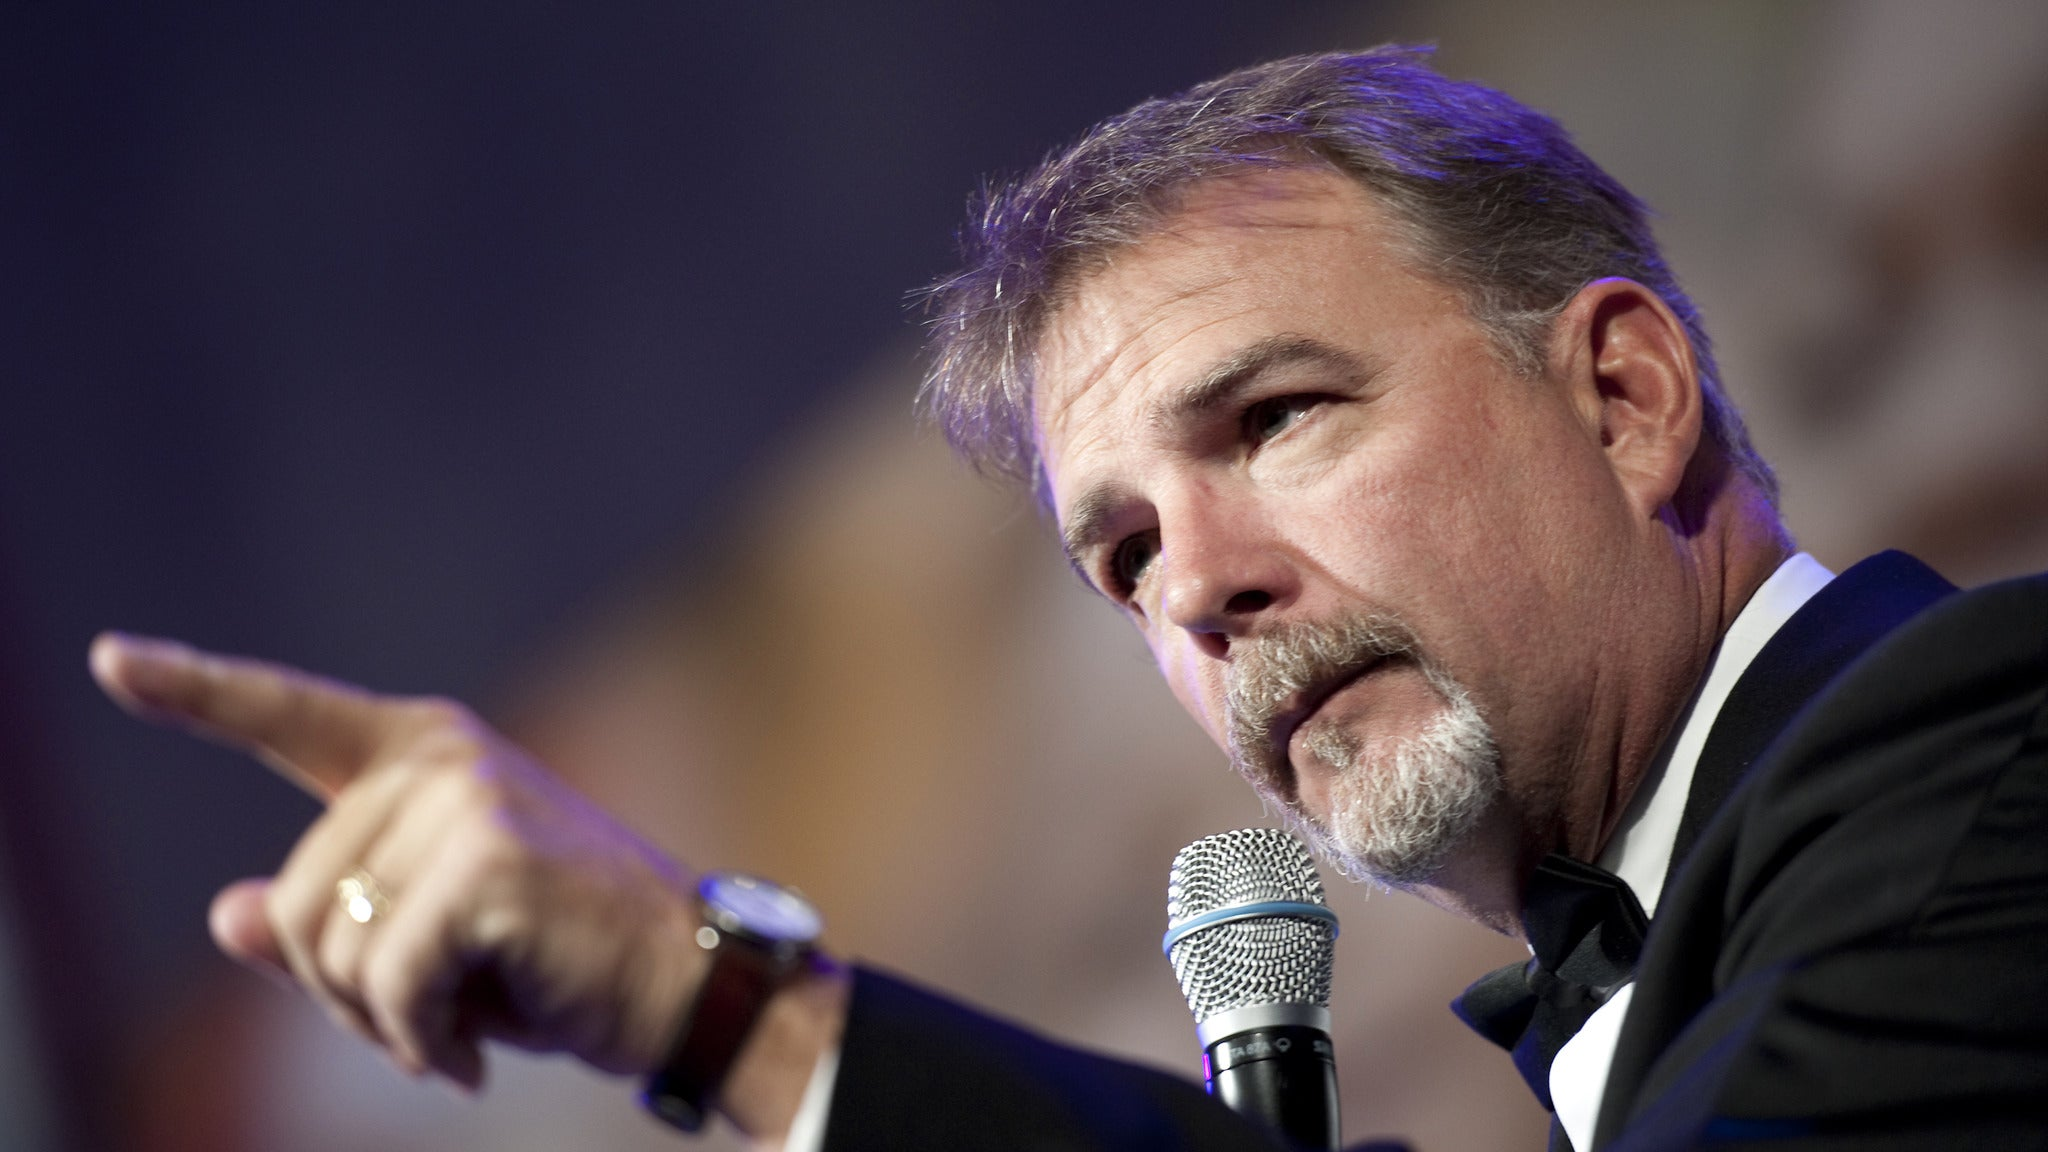 Bill Engvall at ASU Kerr Cultural Center